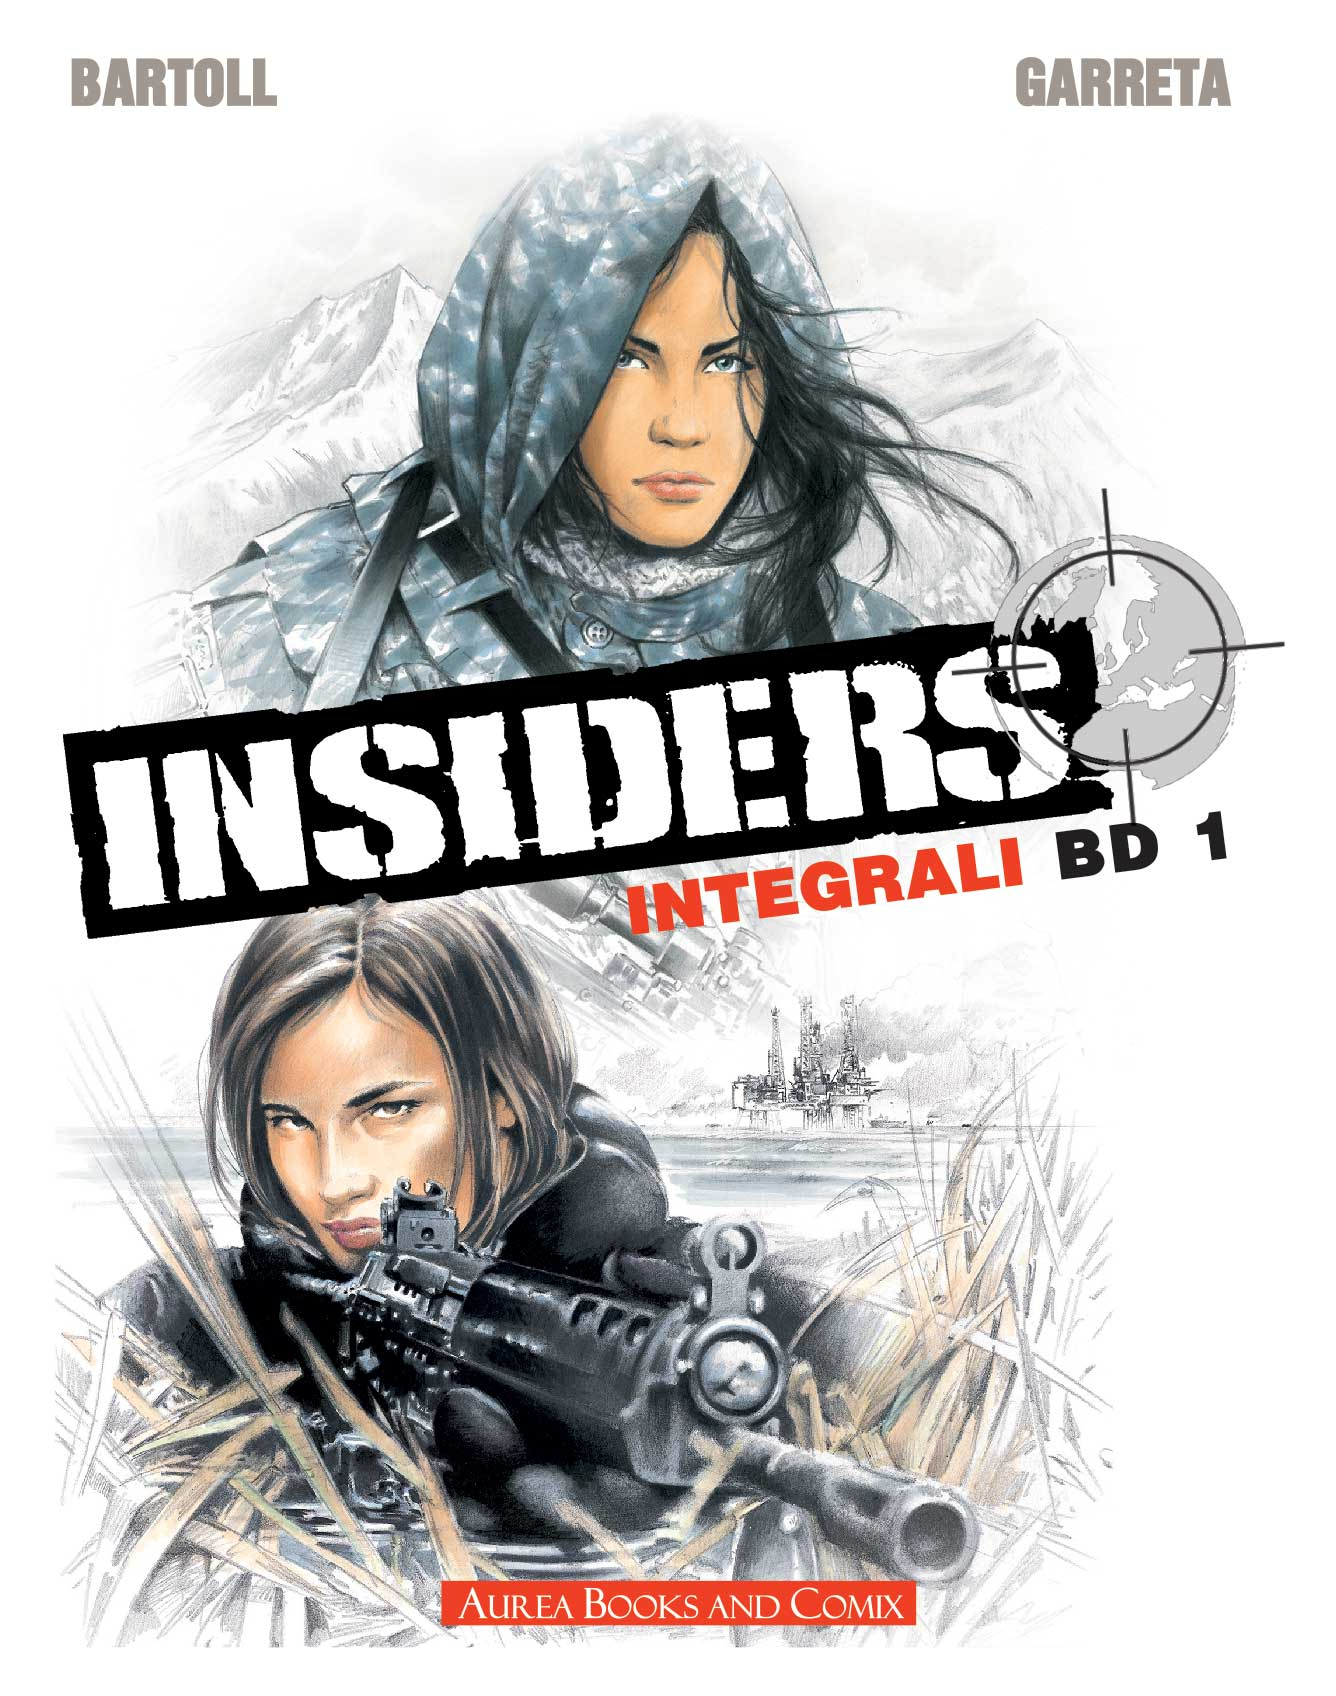 Integrali BD Insiders 1